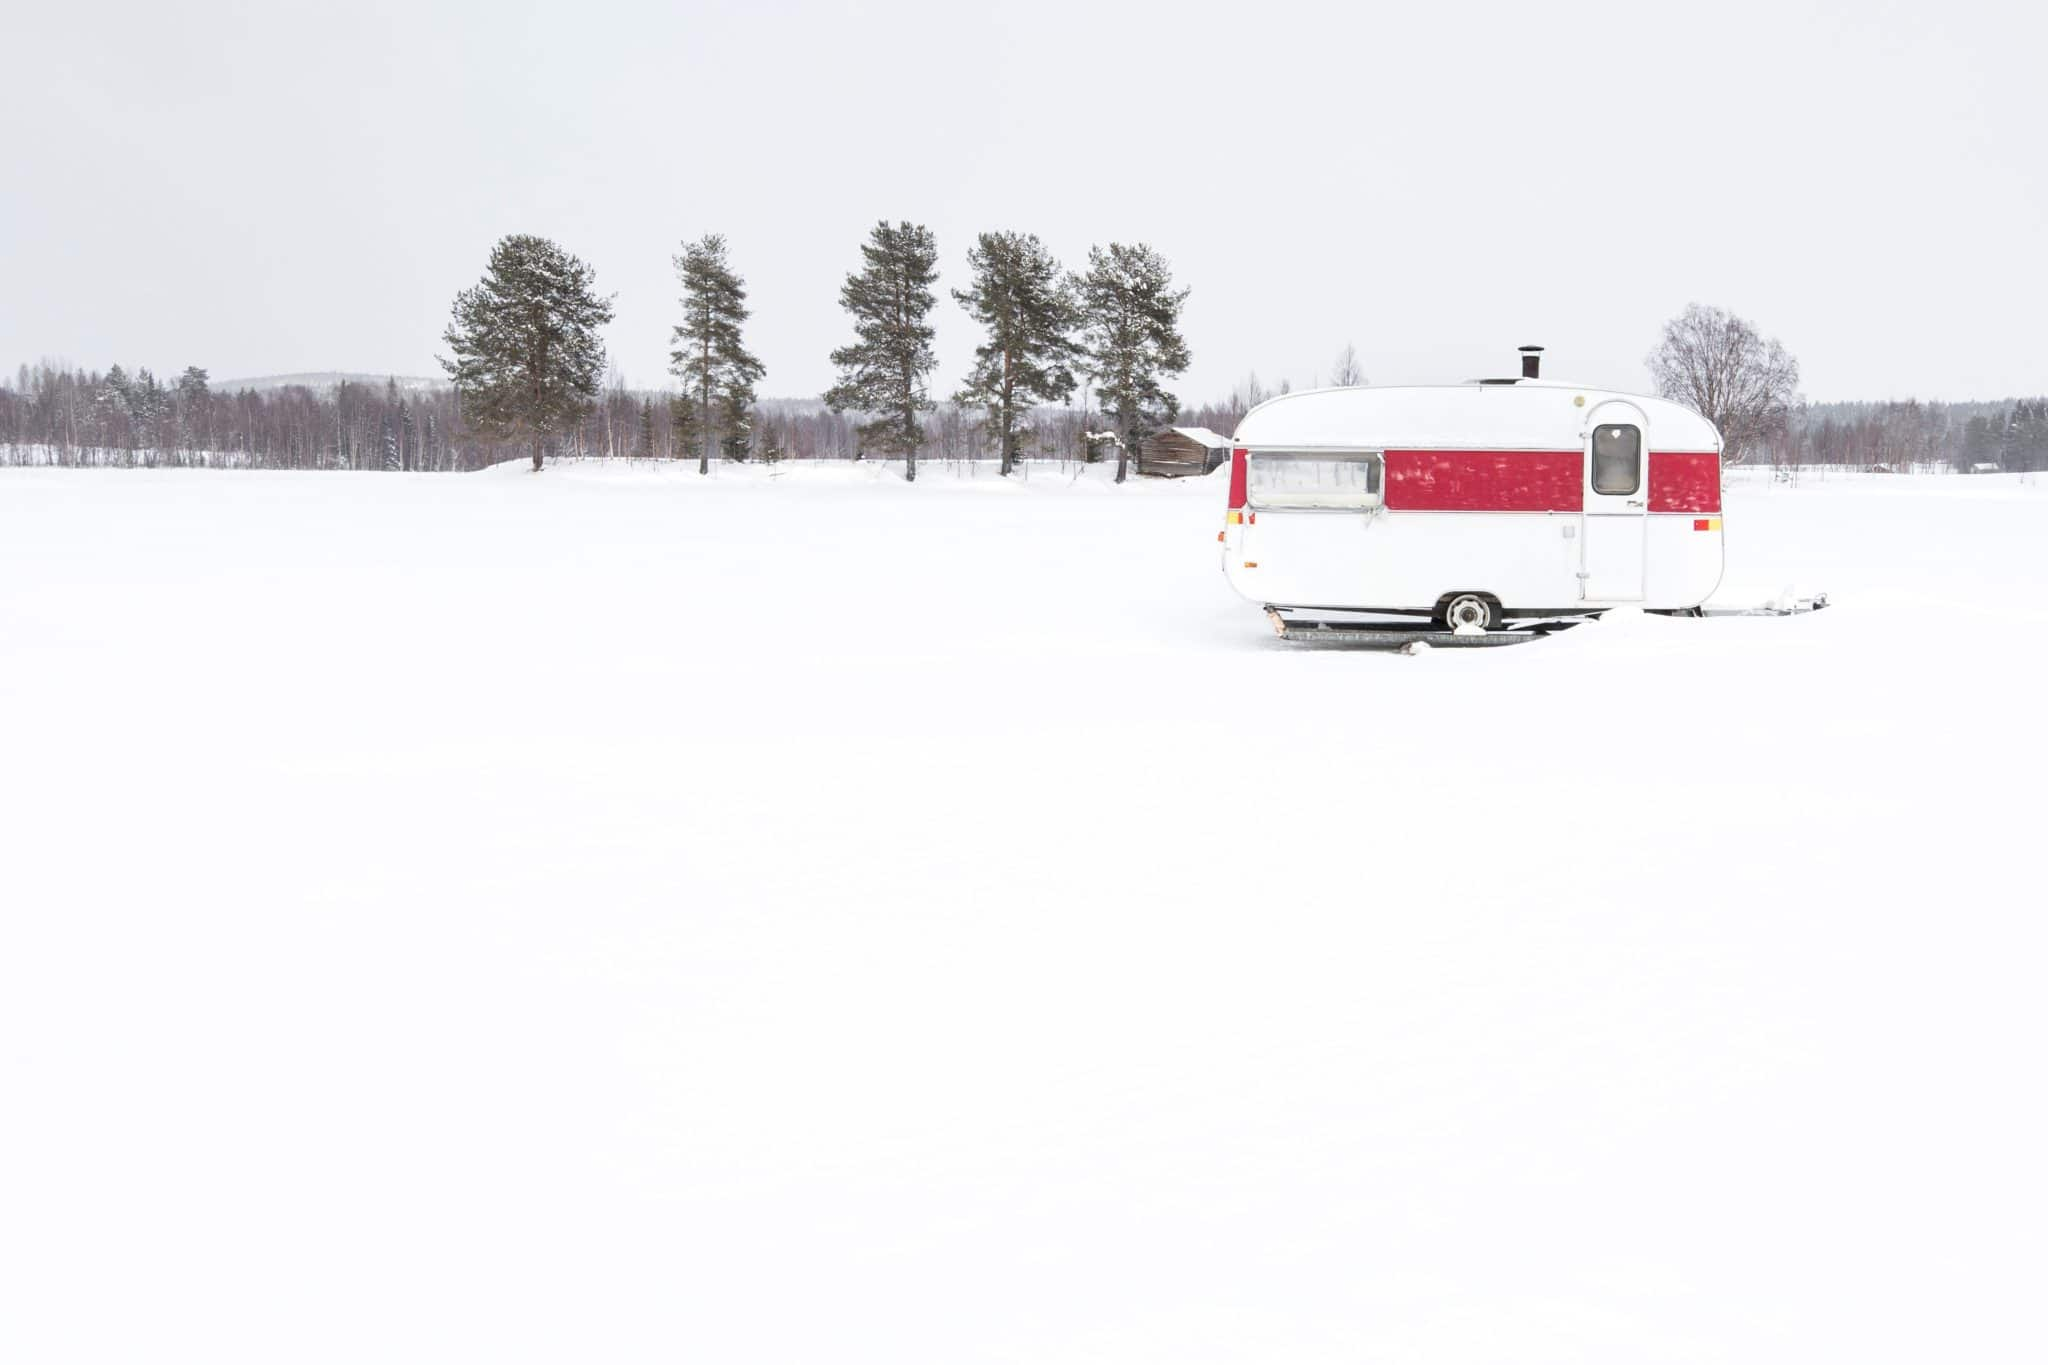 Winterized RV in the snow